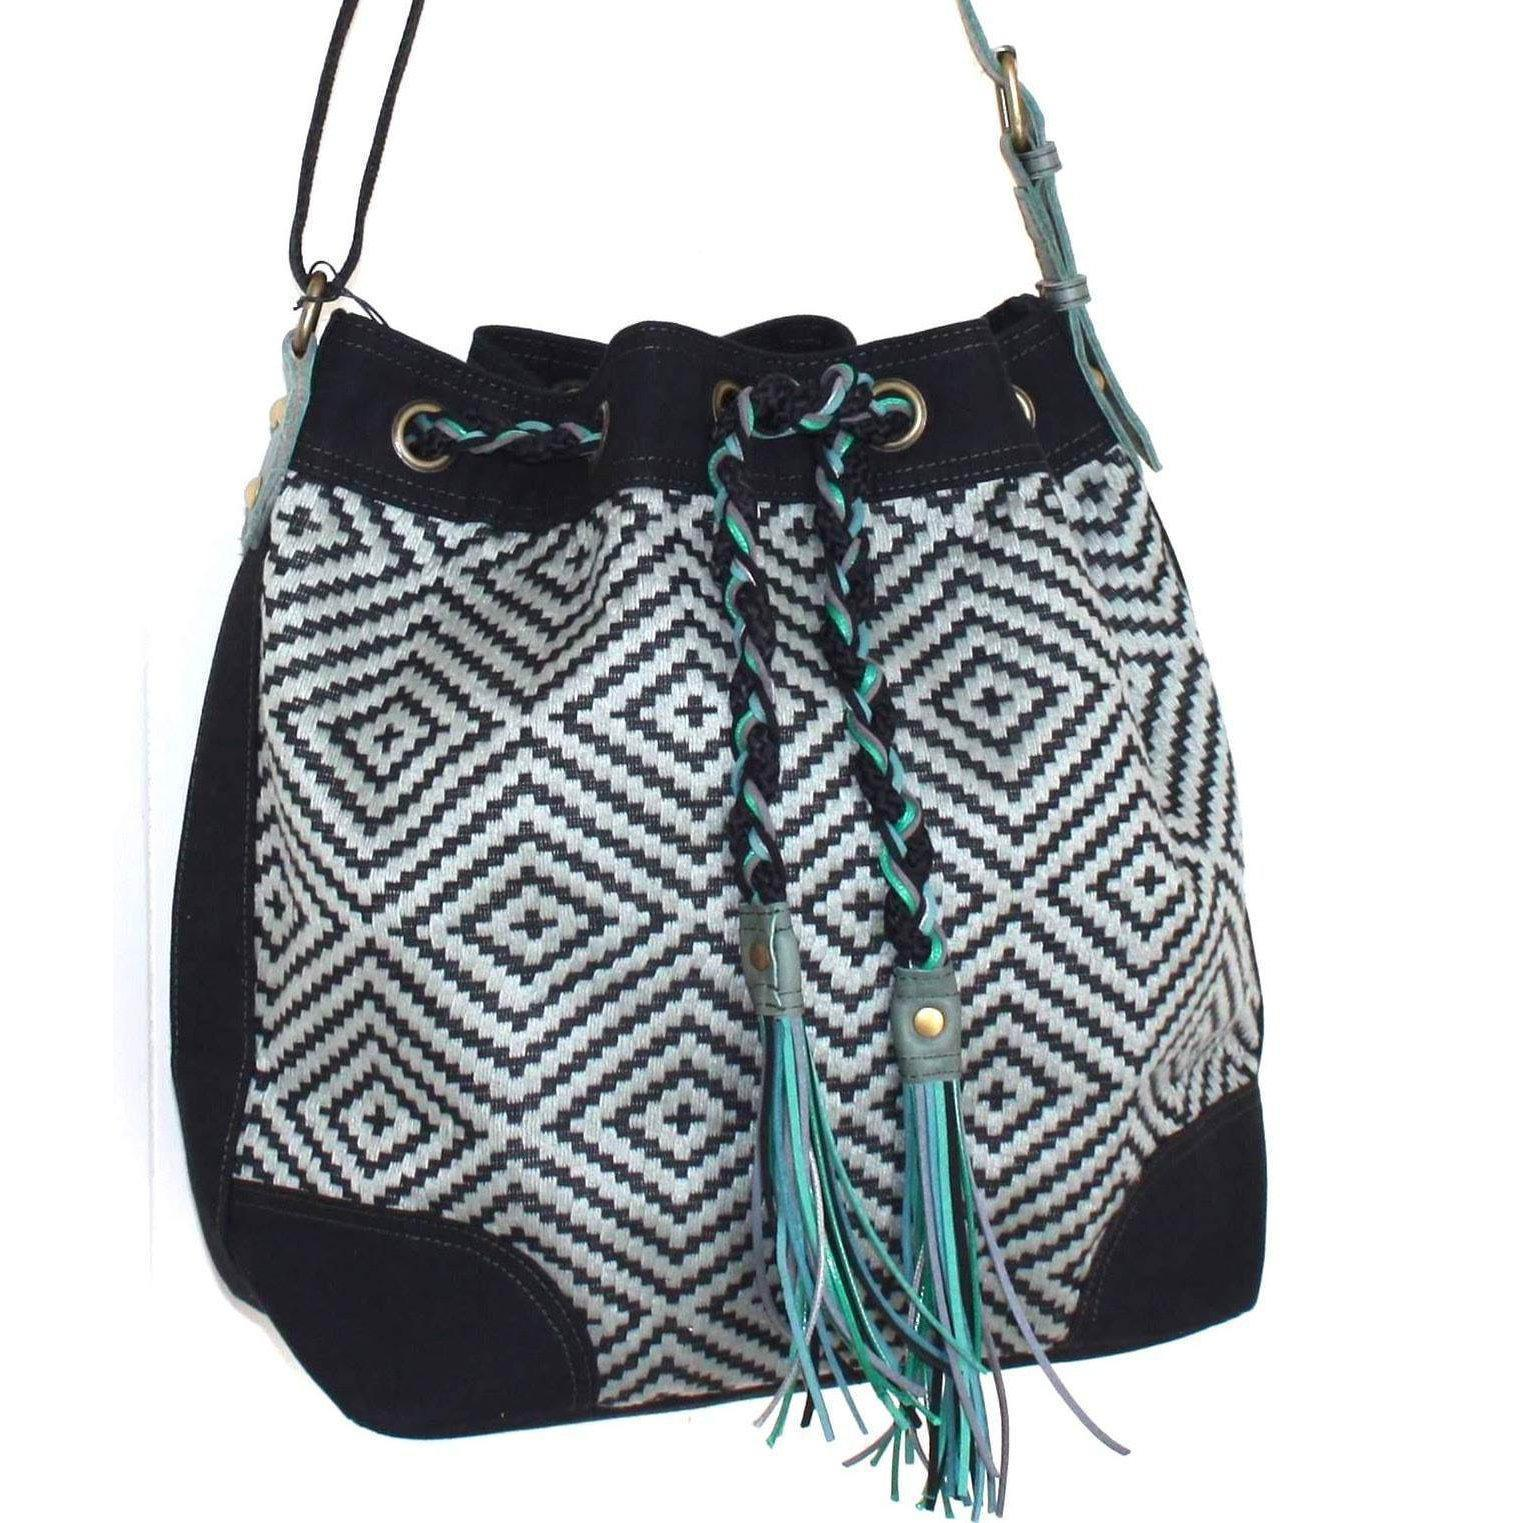 Valerie Cordier Luis Mai Chau Black and Green Bucket Bag